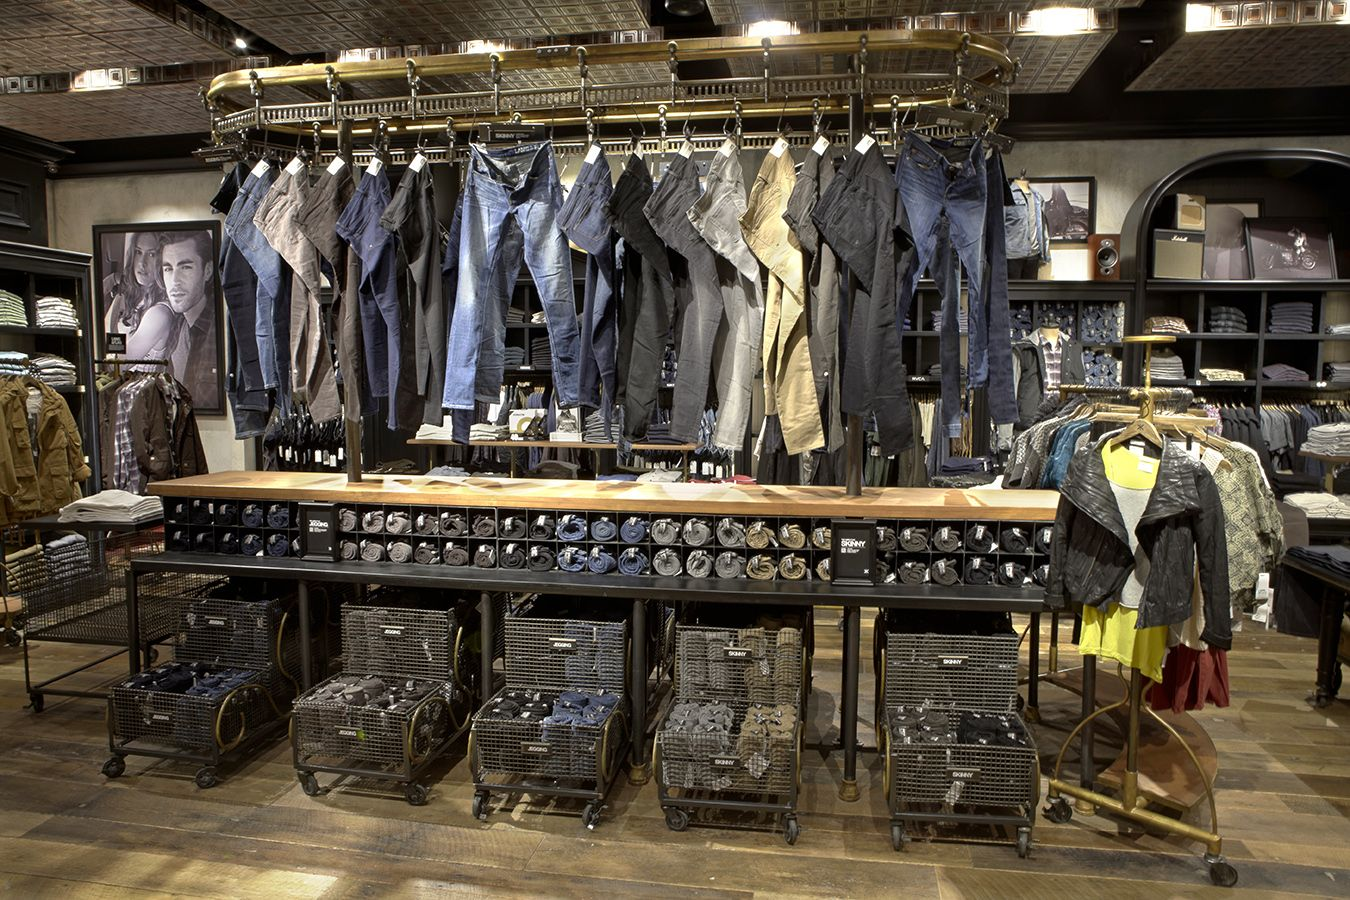 Rustic clothing department store - Google Search | Bed Room Decor | Pinterest | Rustic clothing ...